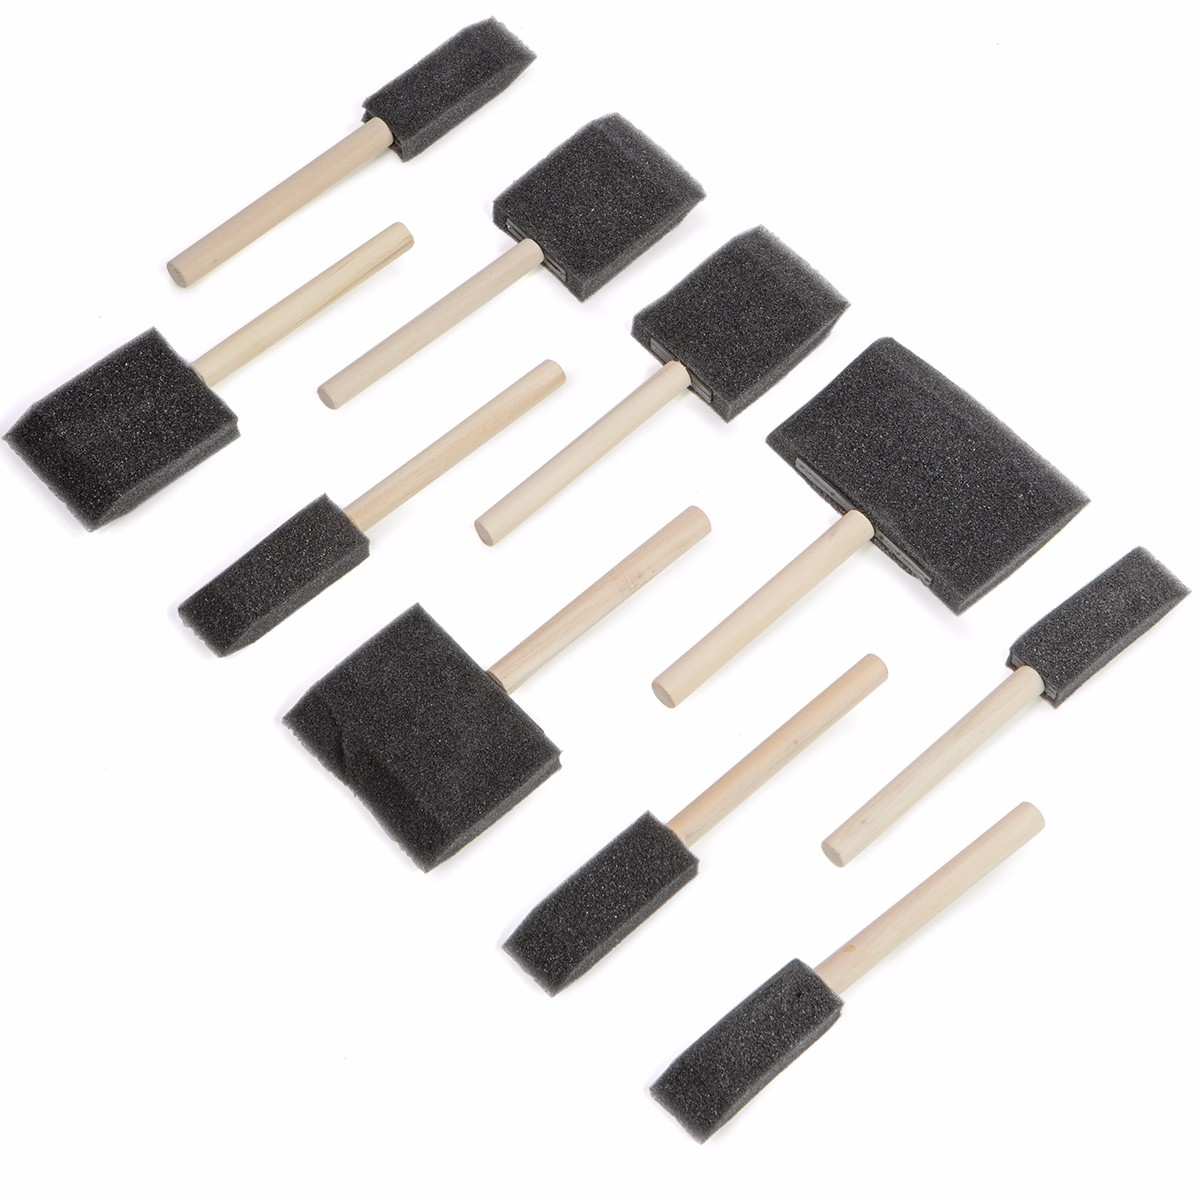 Foam Paint Interior & Exterior Touch Up Brush Set with Wood Handle , 10PC